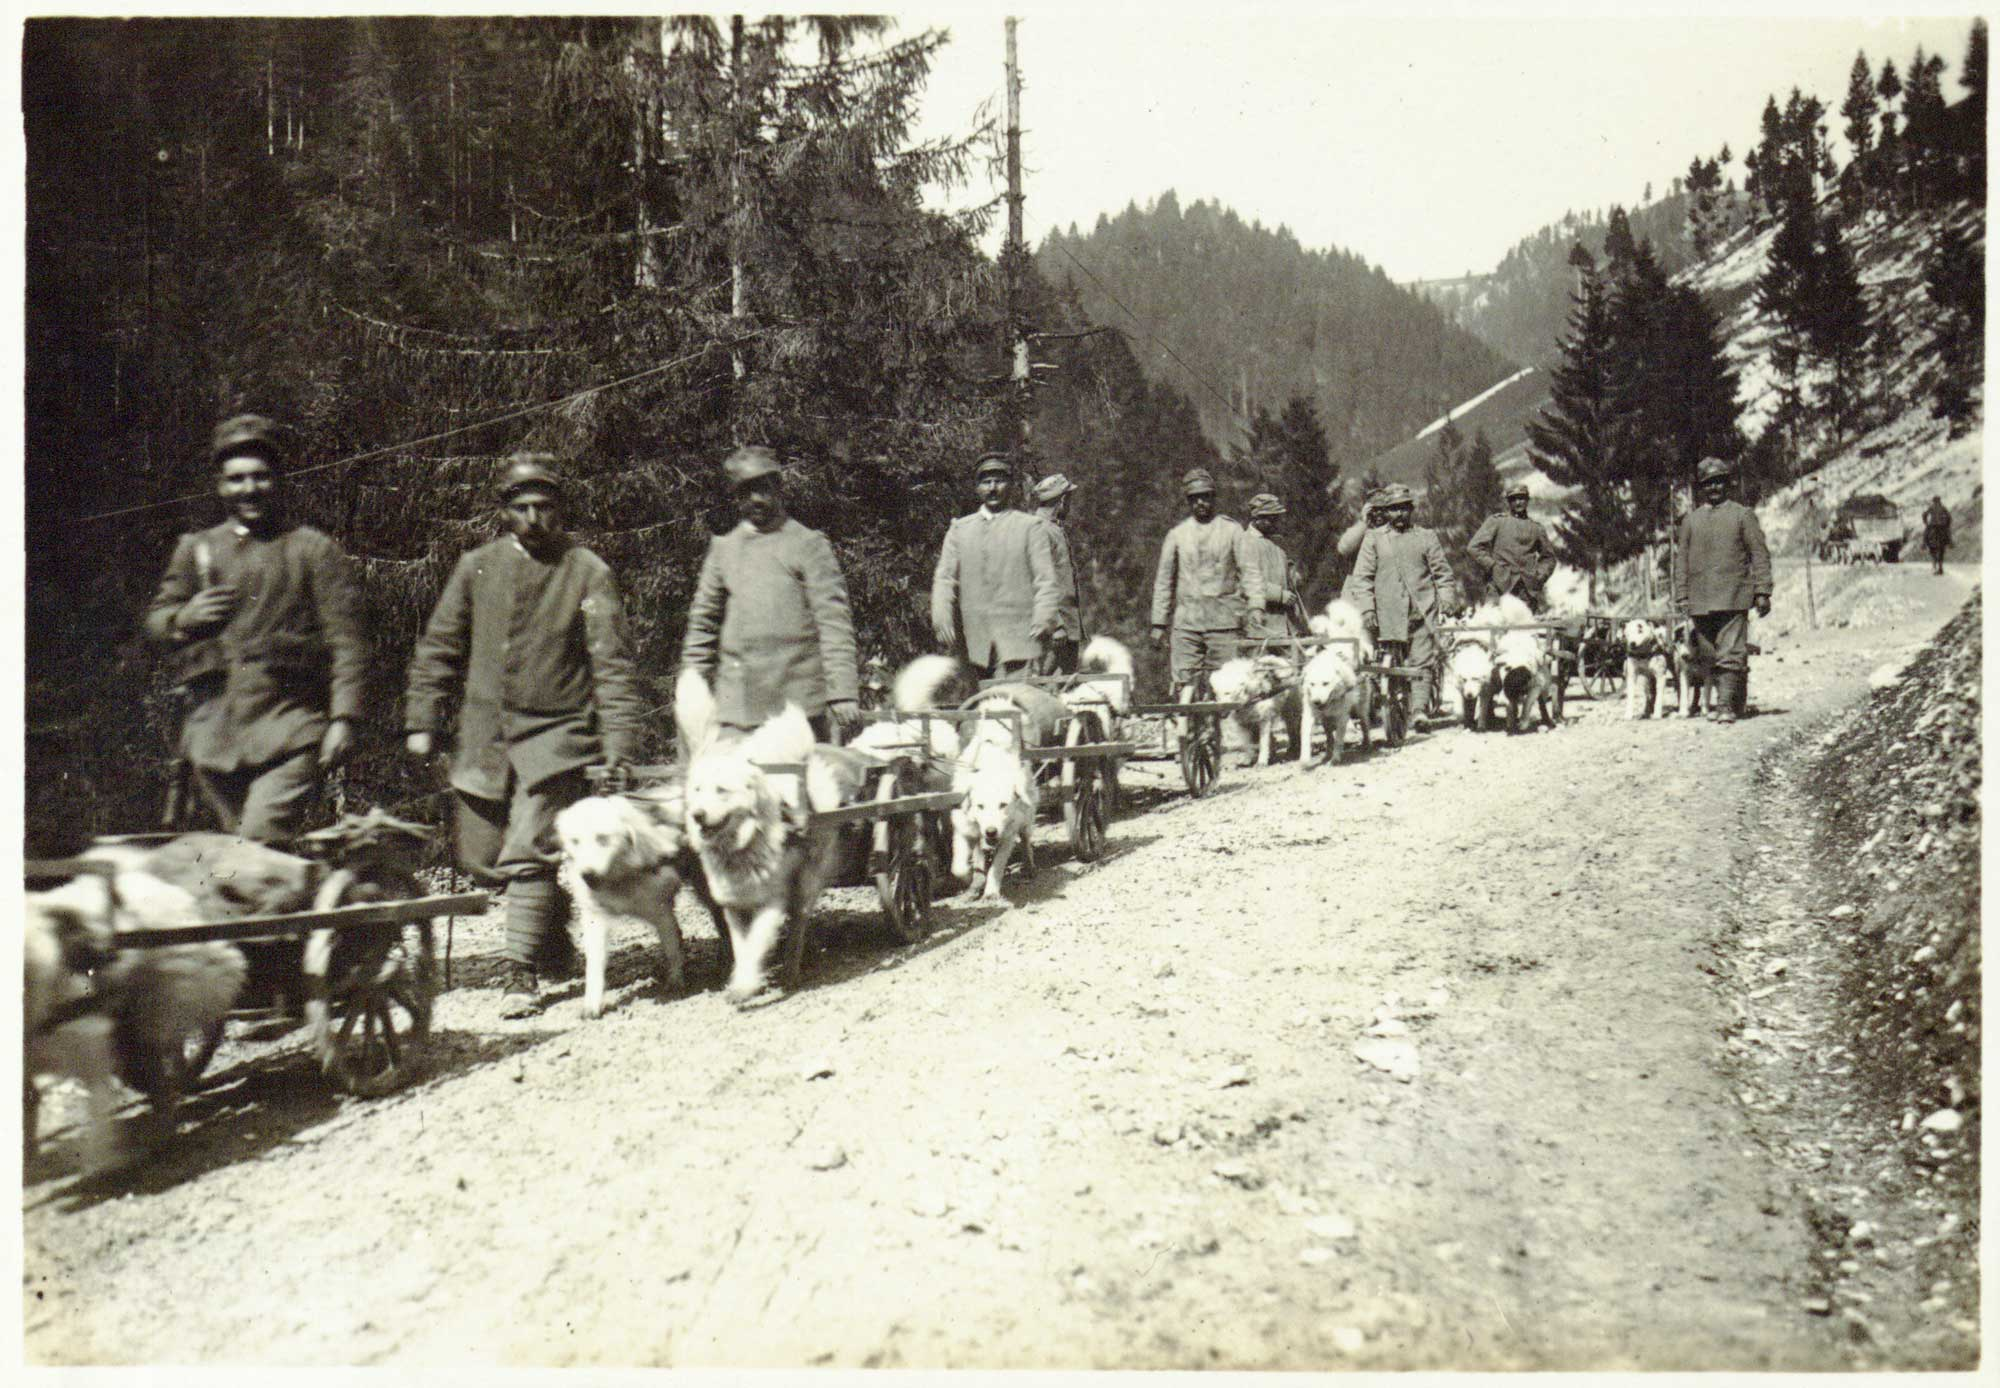 Dogs drawing carts transporting material and supplies for the Austro-Hungarian Army.